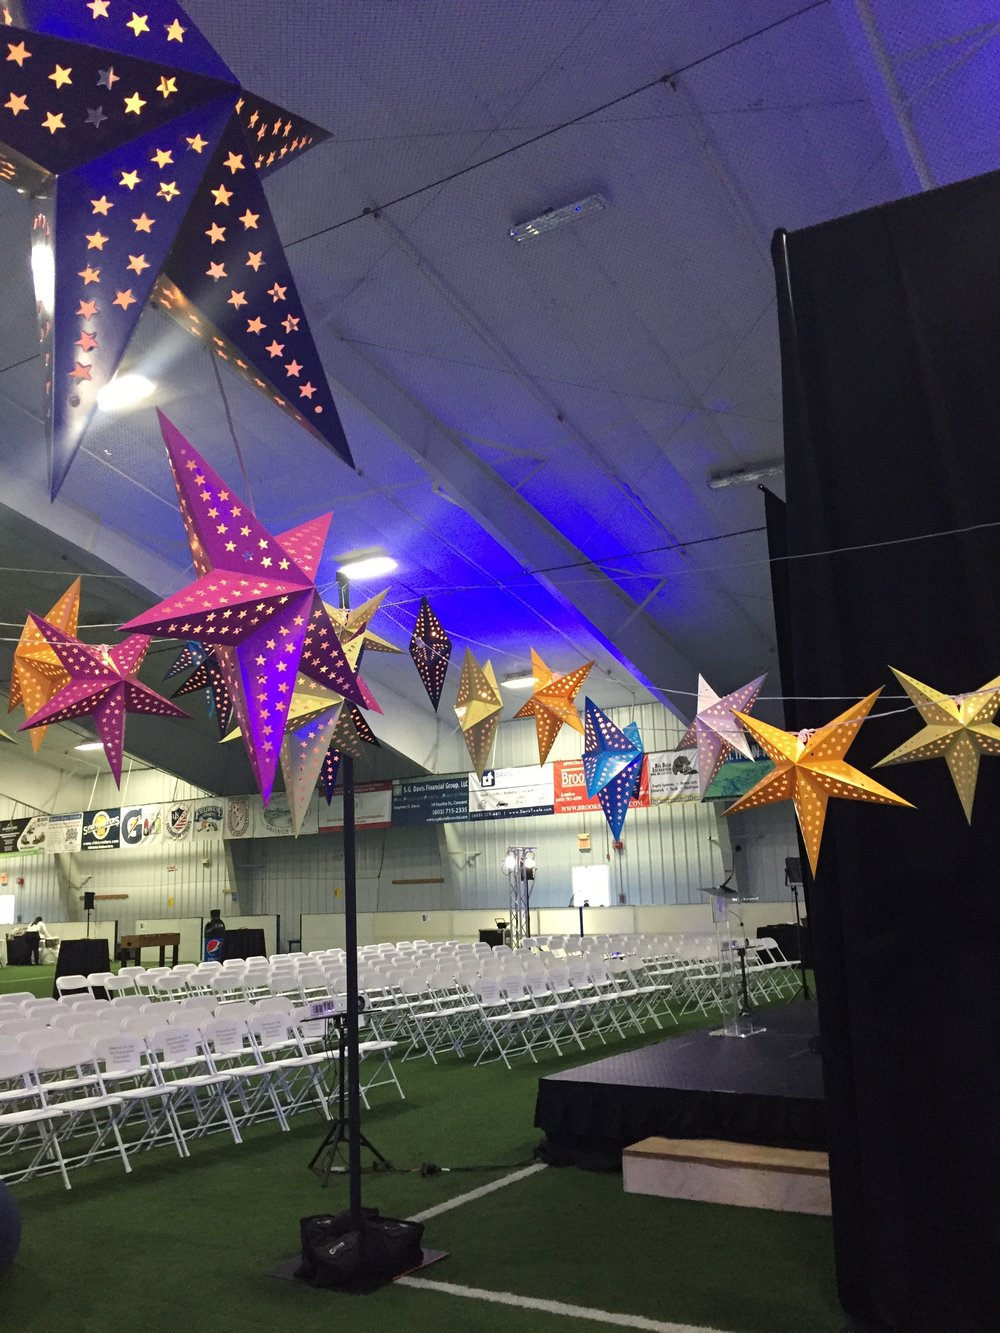 Star lanterns on cafe light strands installed with heavy bases and upright poles in a sports arena, Fieldhouse Sports, Bow, NH.